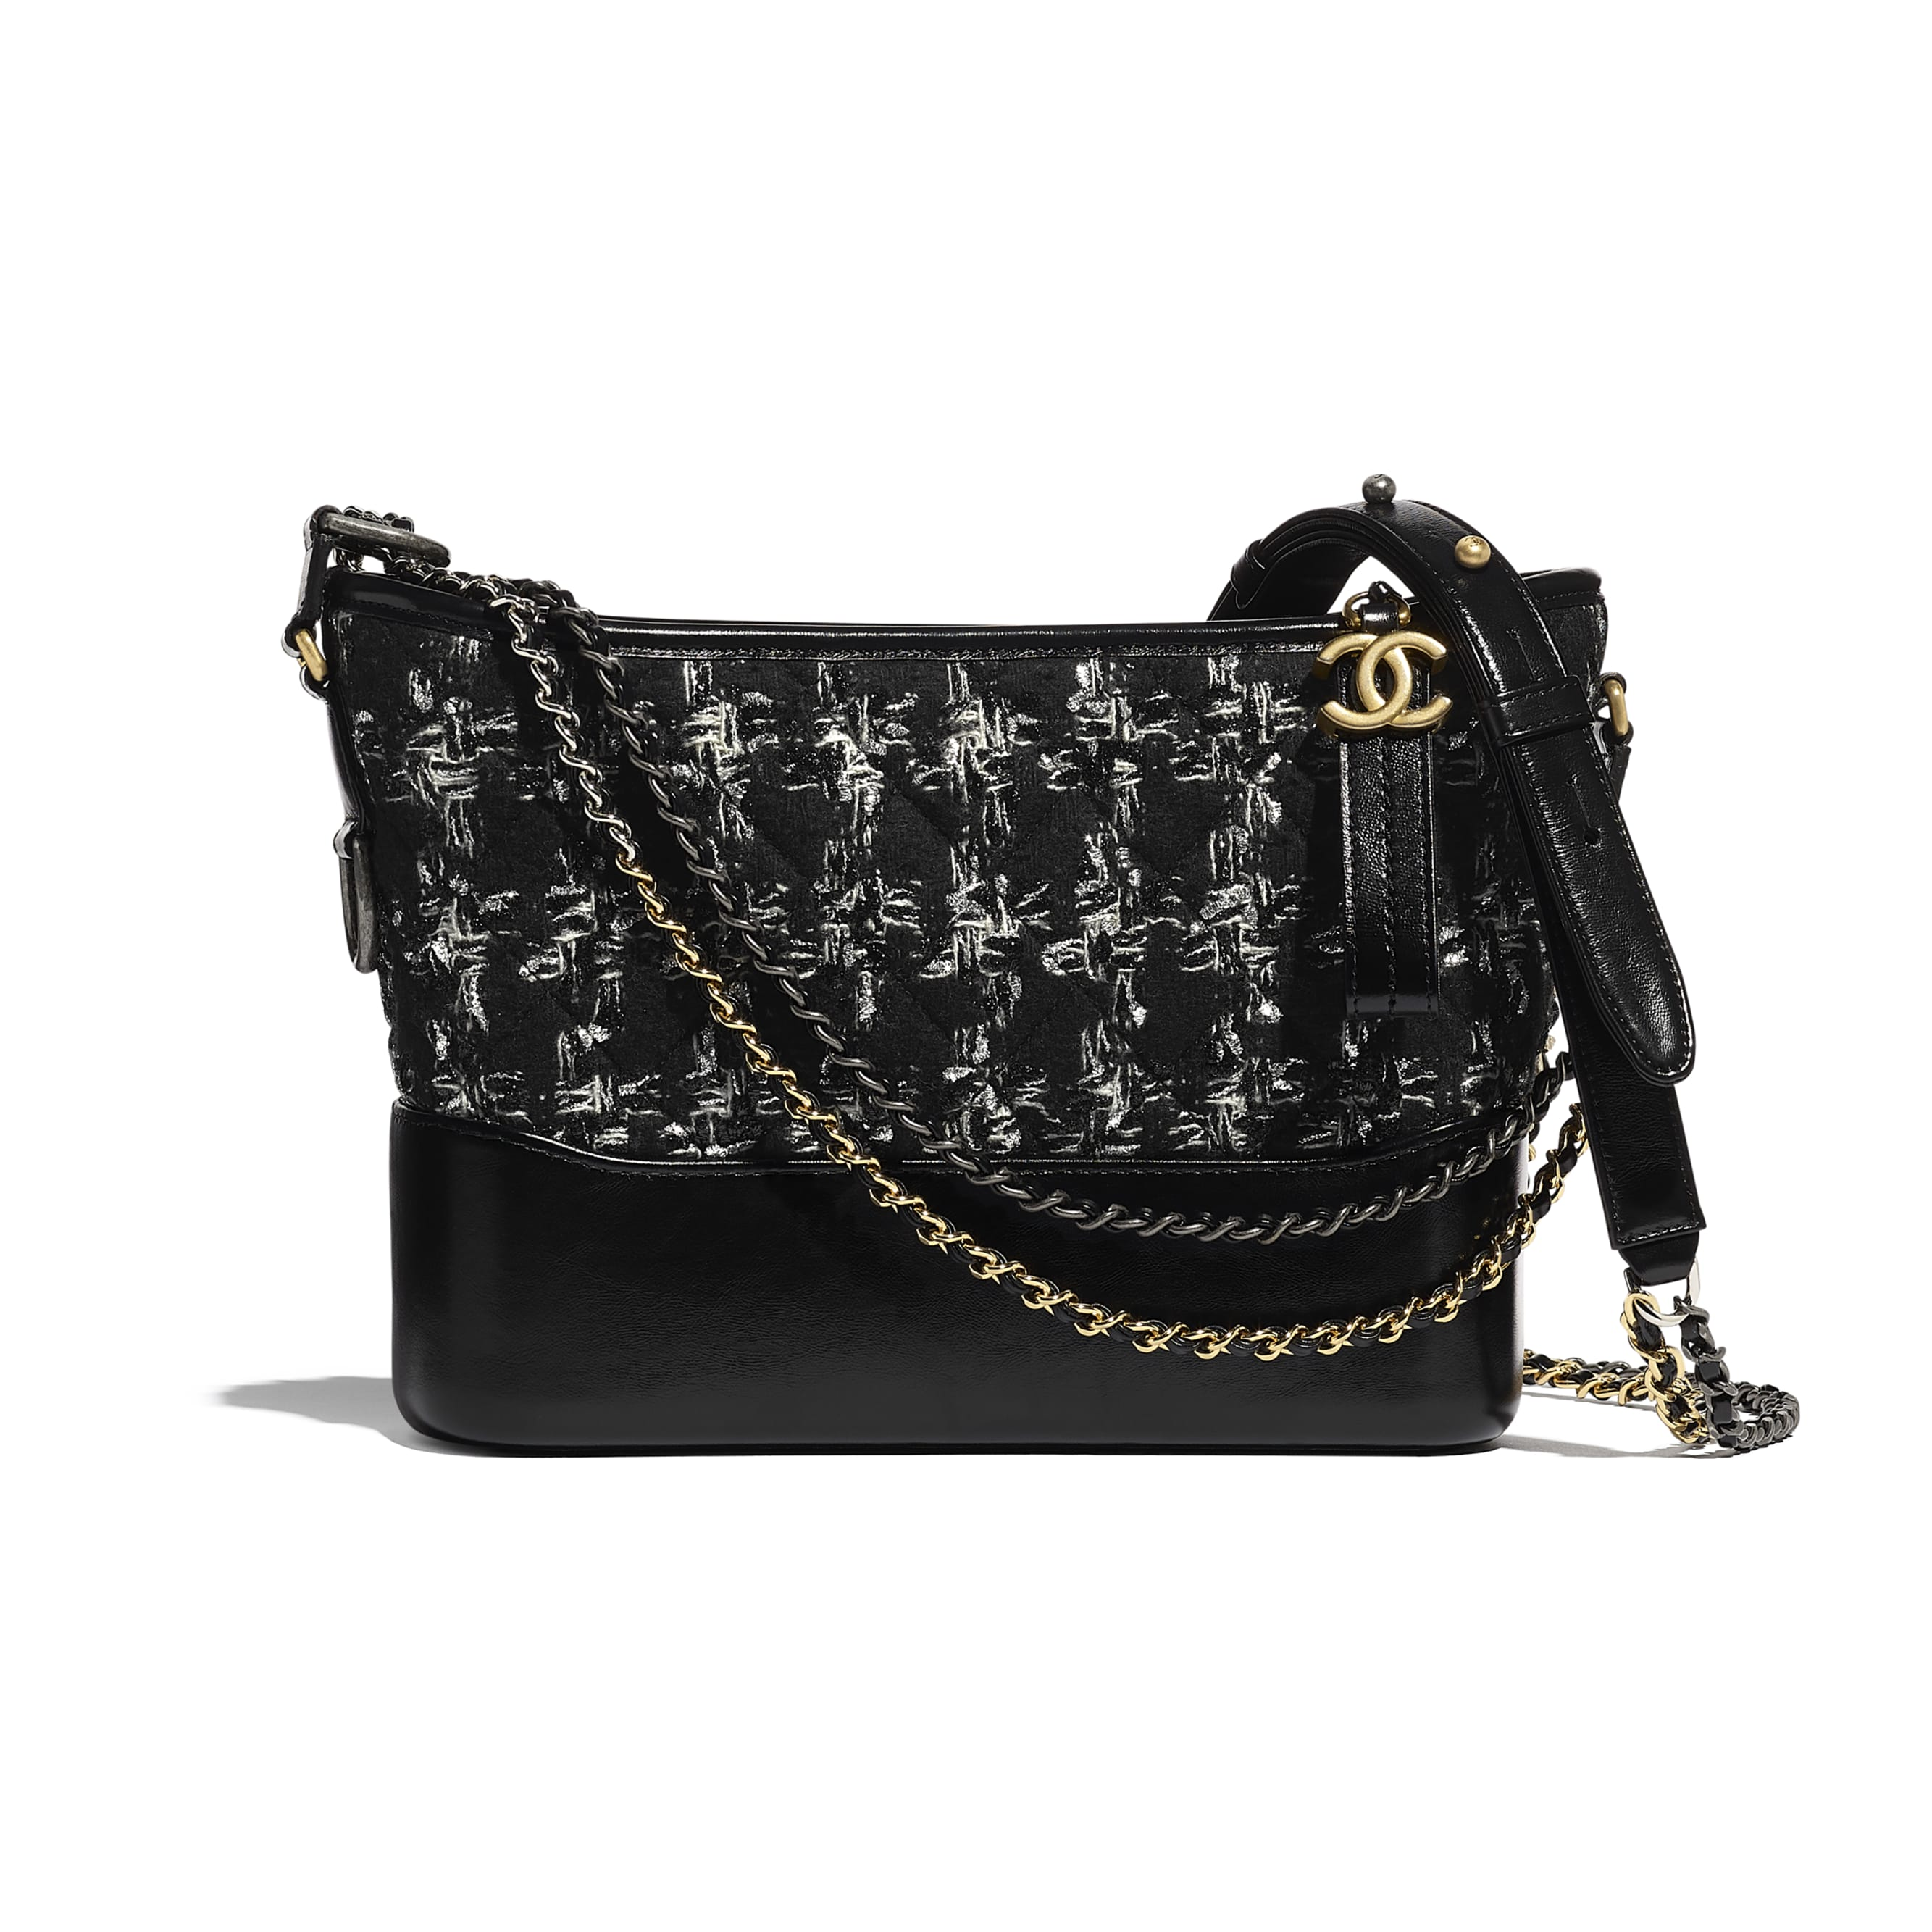 CHANEL'S GABRIELLE Hobo Handbag - Black, silver & ecru - Tweed, Calfskin, Gold-Tone, Silver-Tone & Ruthenium-Finish Metal - CHANEL - Default view - see standard sized version